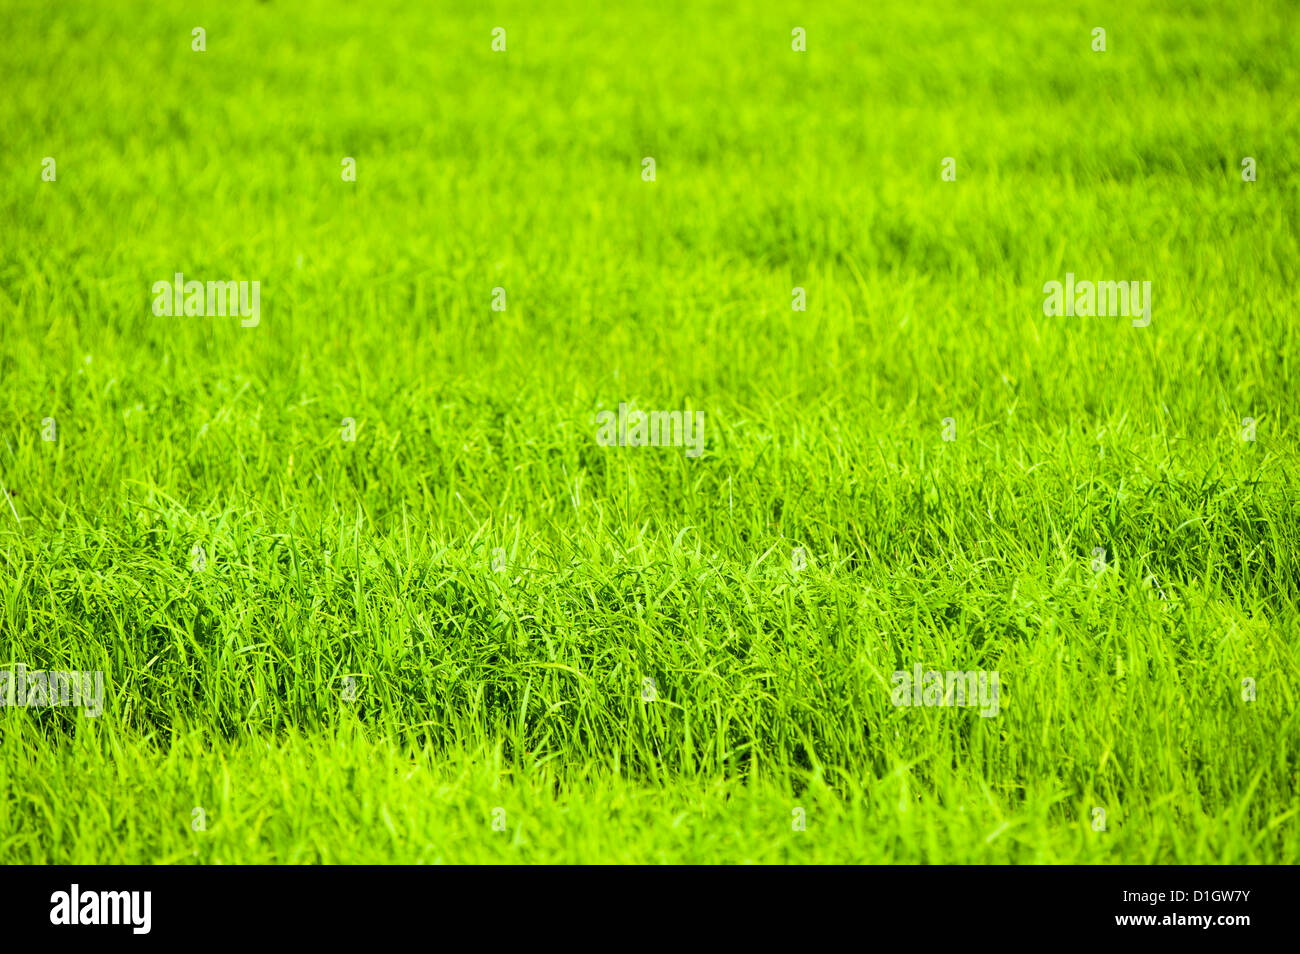 Rice paddy fields near Chiang Rai, Thailand, Southeast Asia, Asia - Stock Image